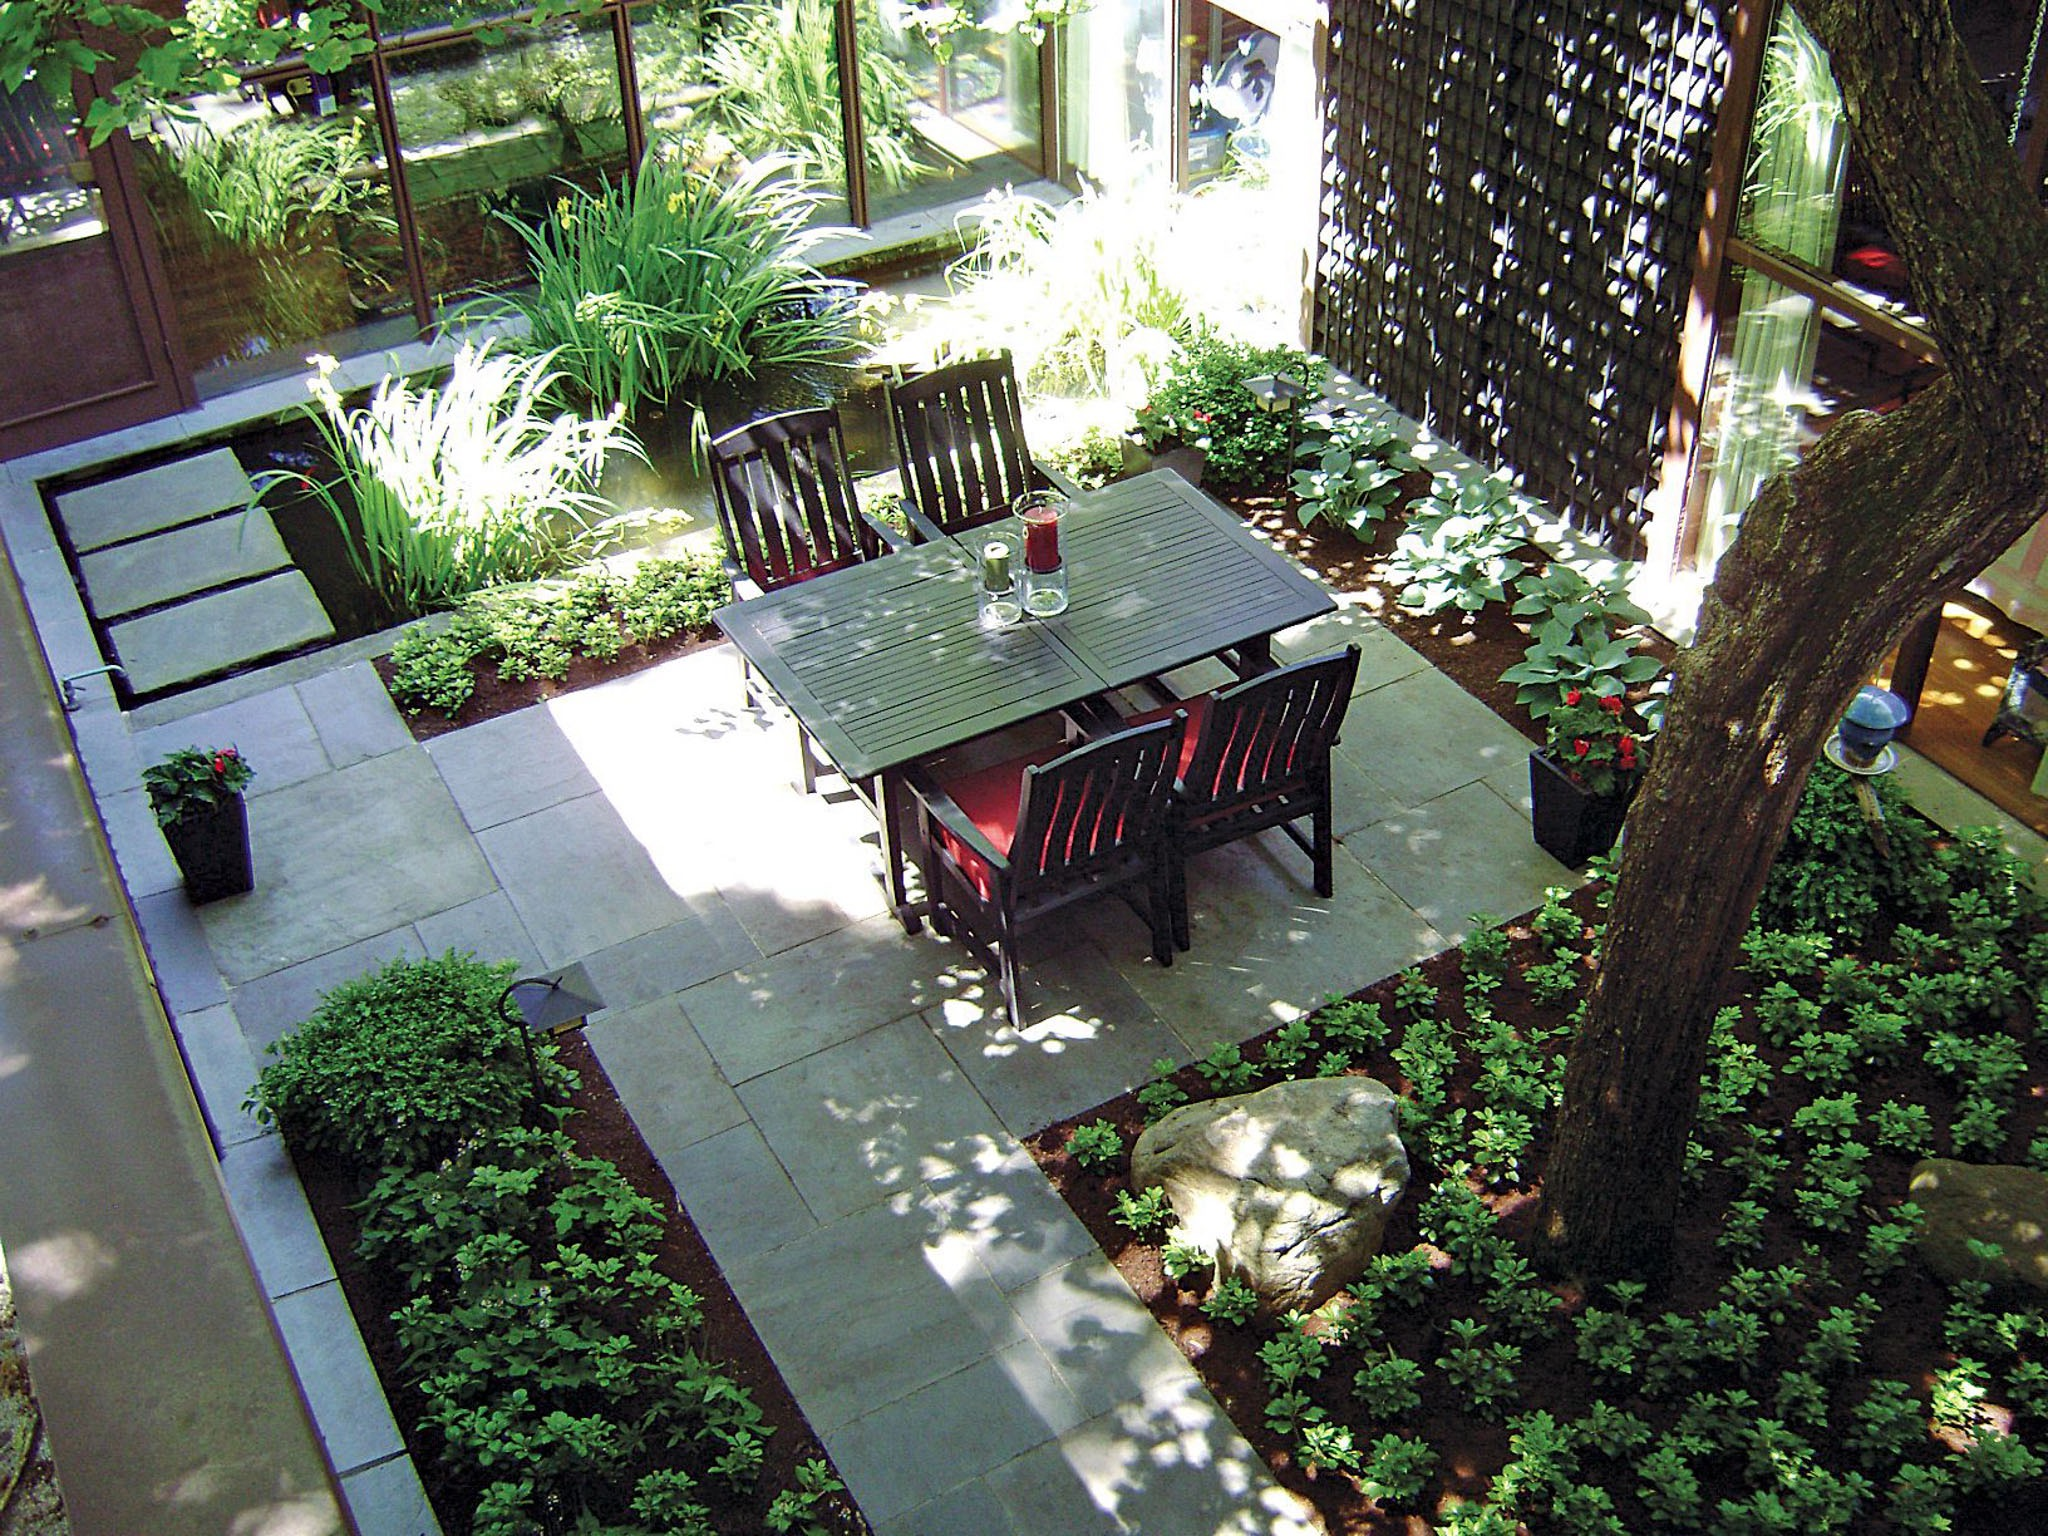 Modern Minimalist Courtyard Garden With Bluestone Pathway (Image 23 of 28)